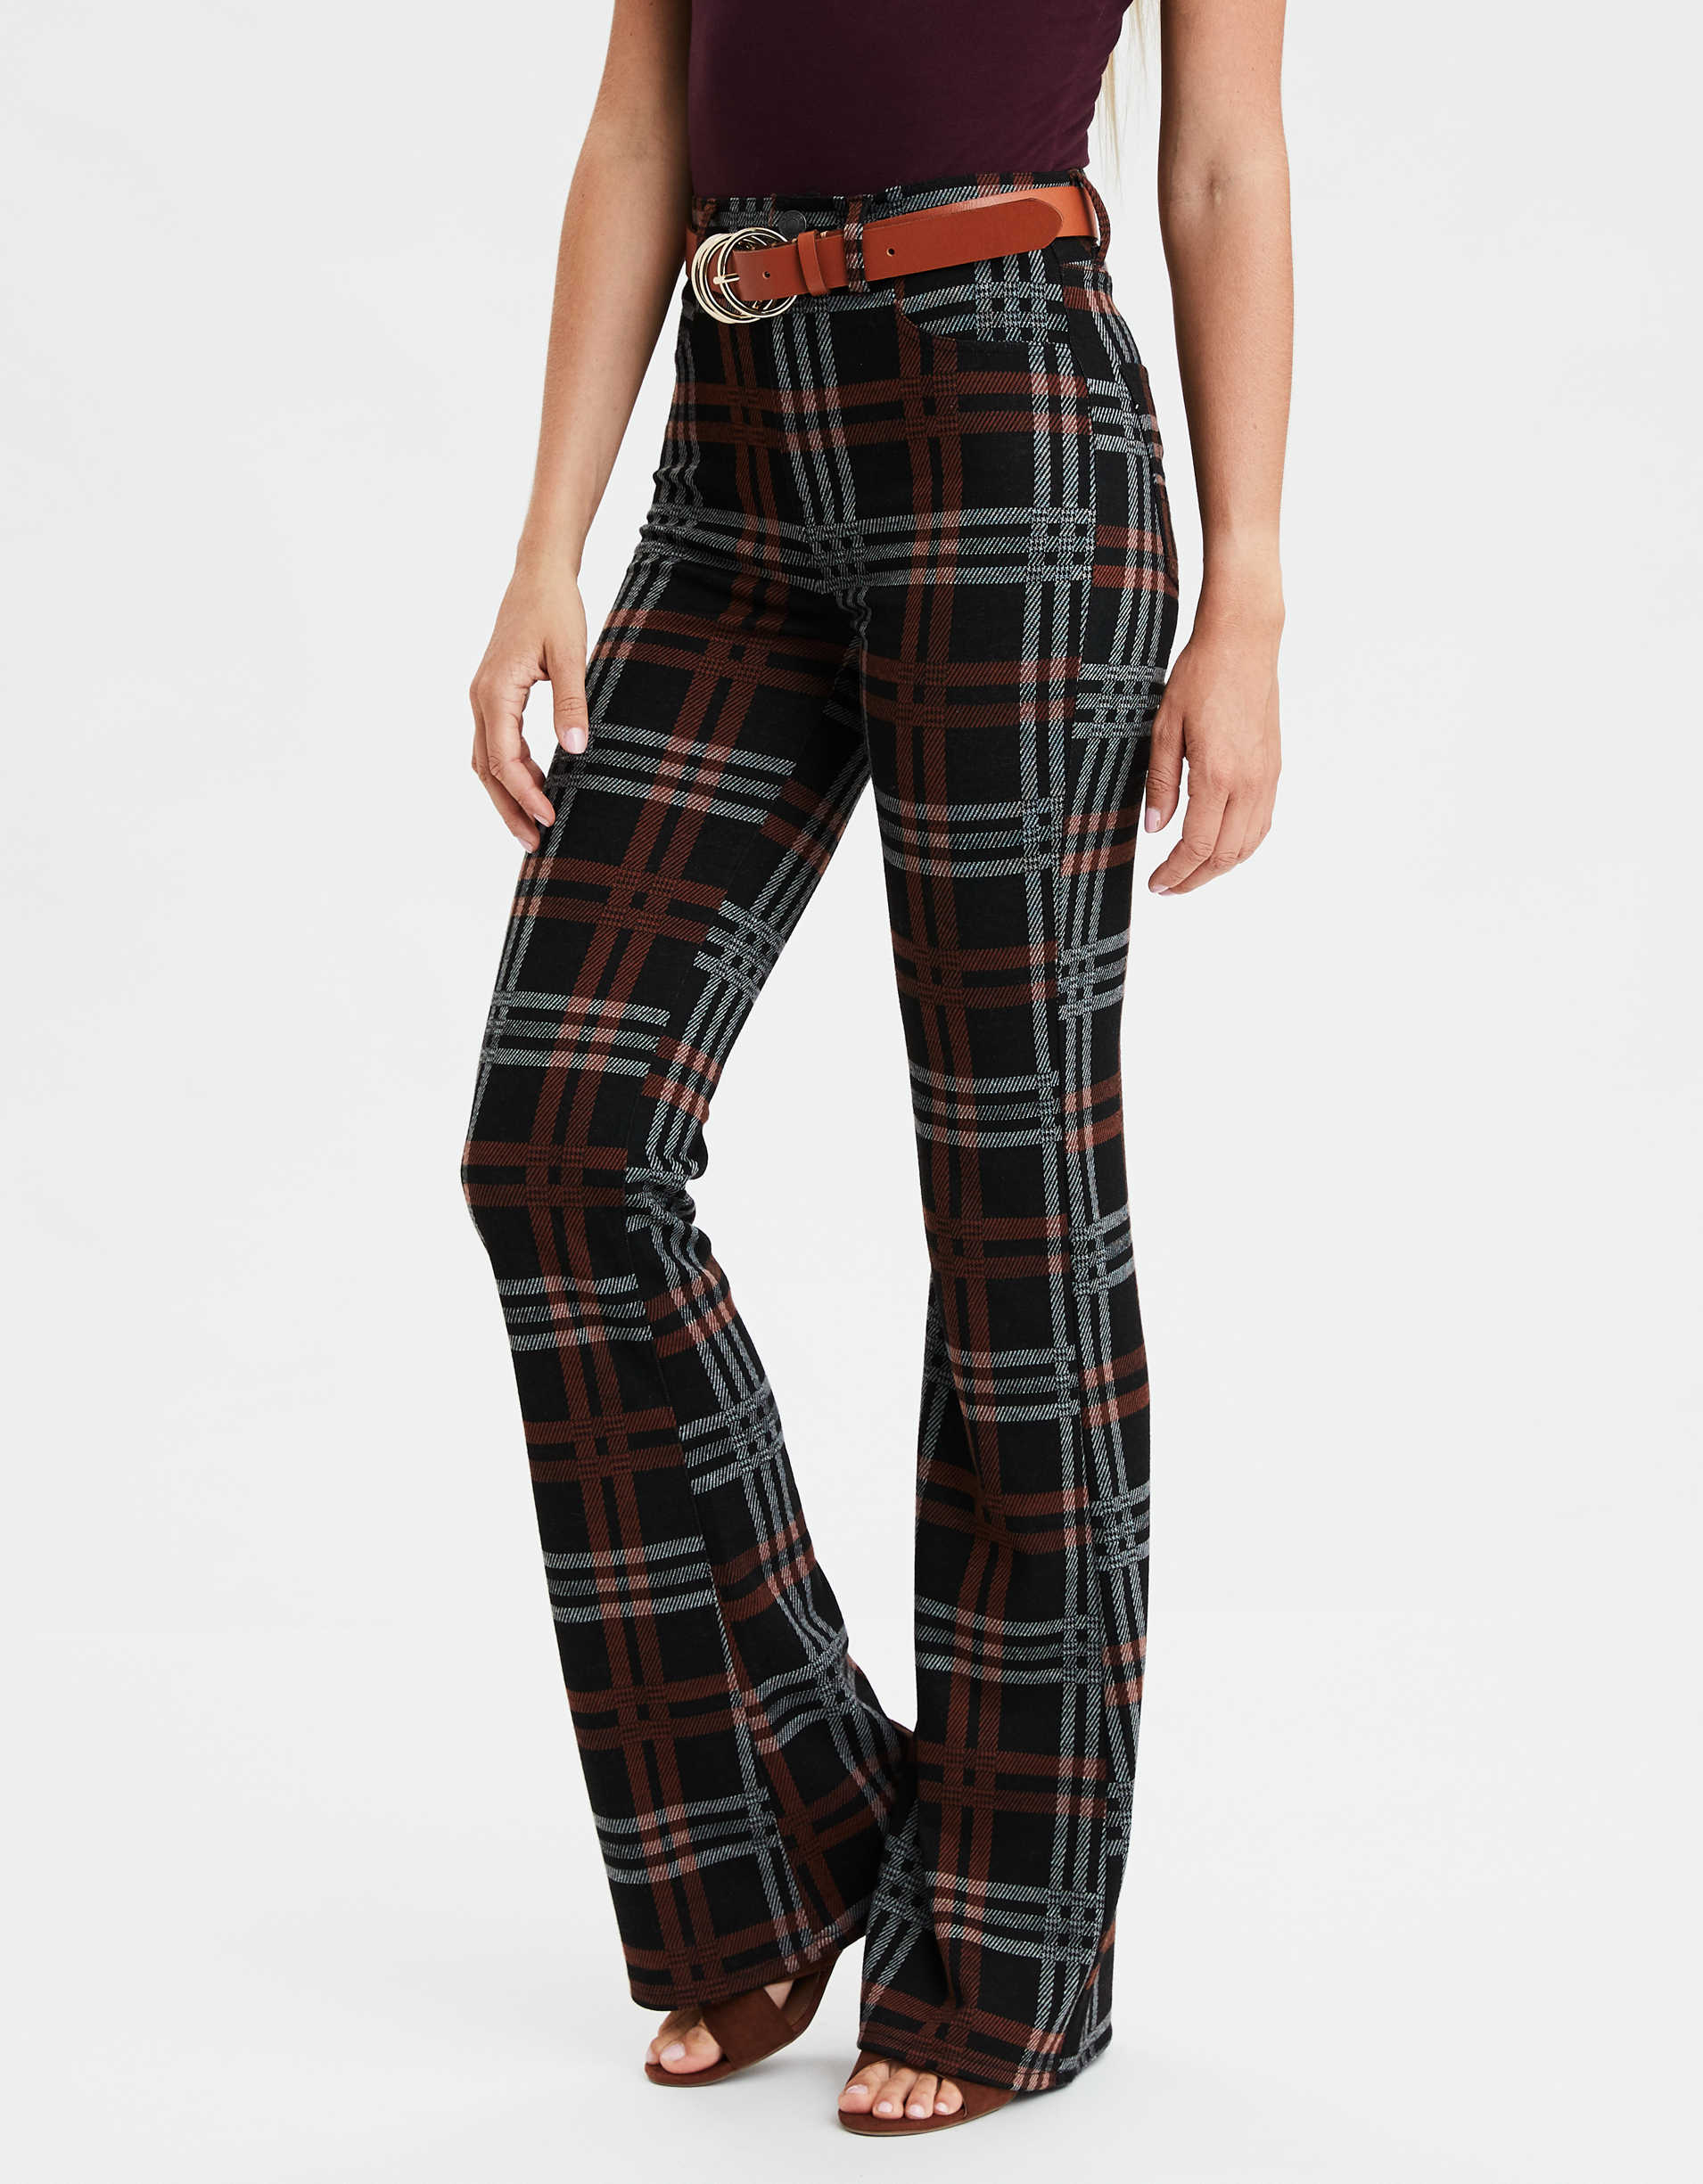 Super High-Waisted Plaid Flare Pant